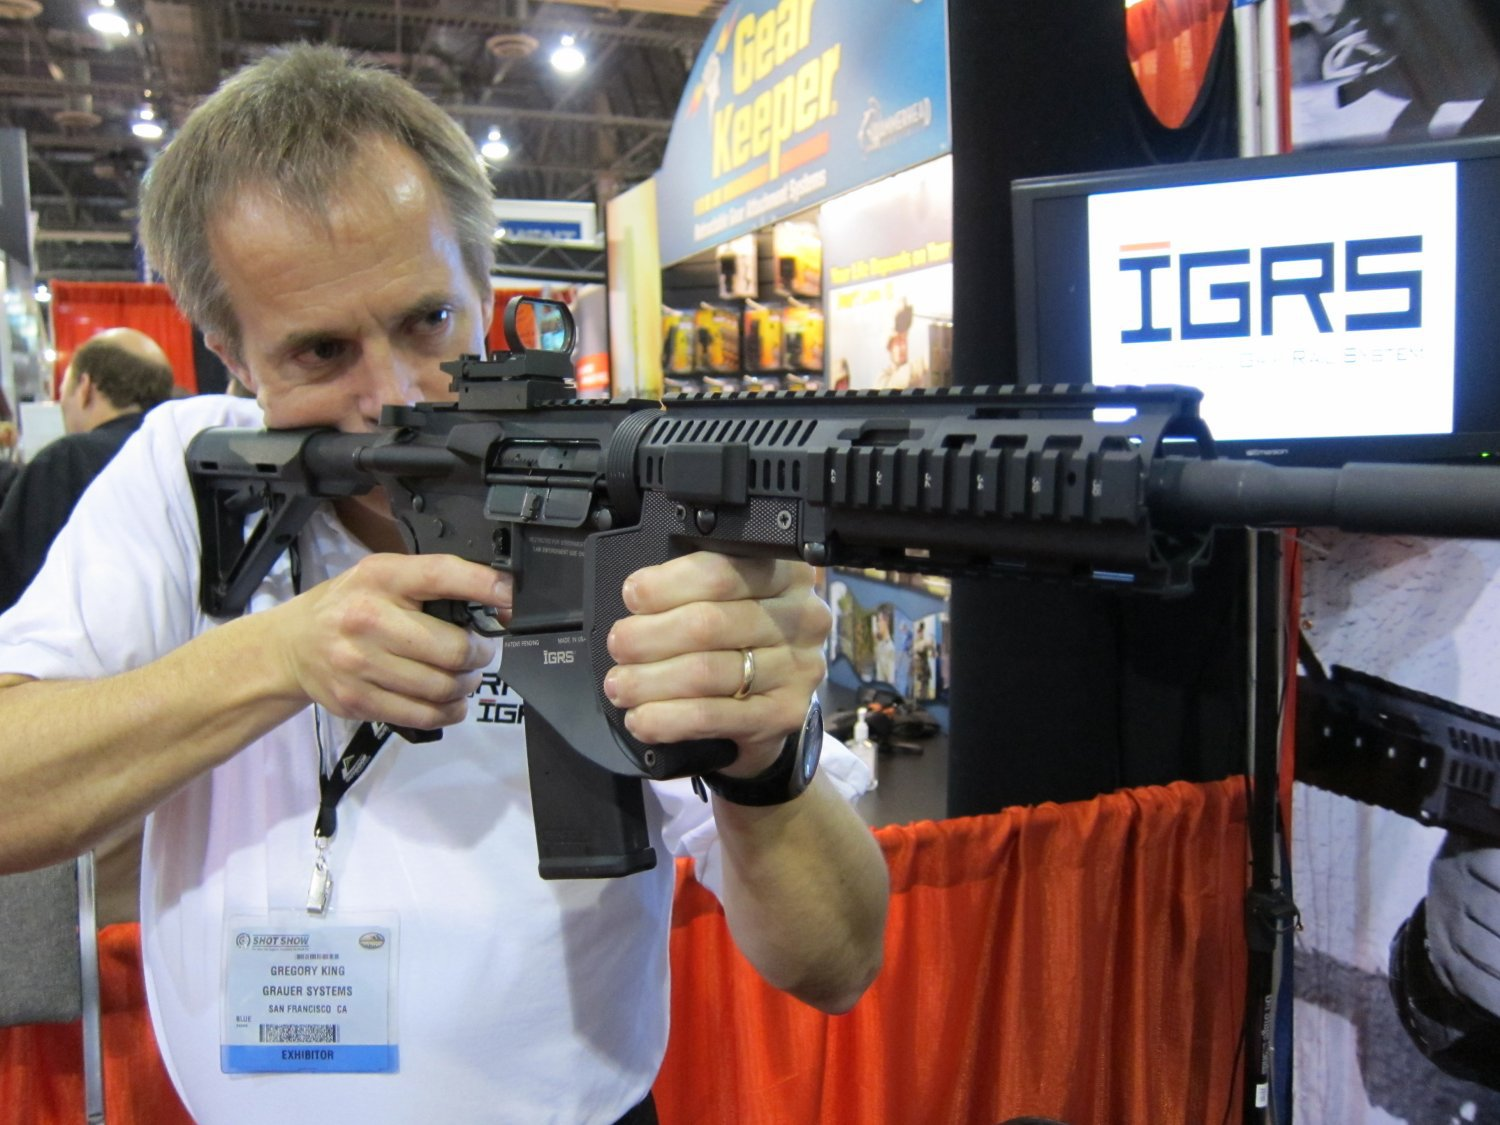 SHOT Show 2010 Grauer Systems Integrated Grip Rail System IGRS 10 <!  :en  >Grauer Systems Integrated Grip Rail System (IGRS) Extended Ramped and Flared Magwell / Vertical Foregrip<!  :  >